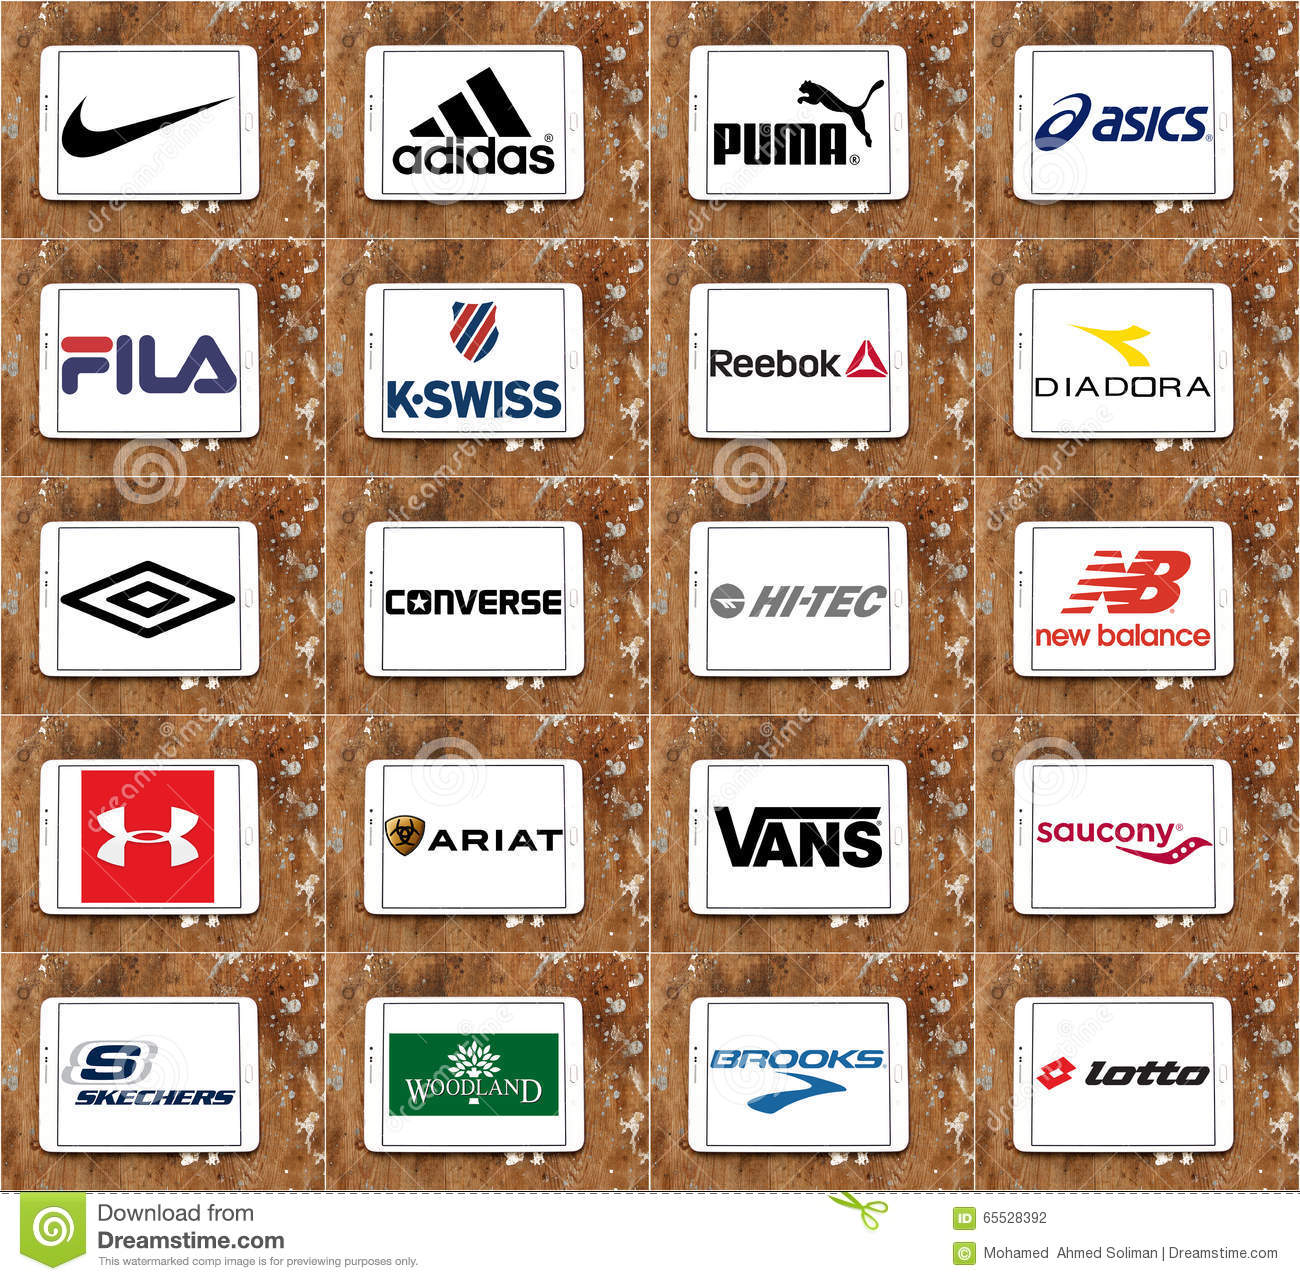 top famous sportswear companies brands and logos editorial photography illustration of. Black Bedroom Furniture Sets. Home Design Ideas